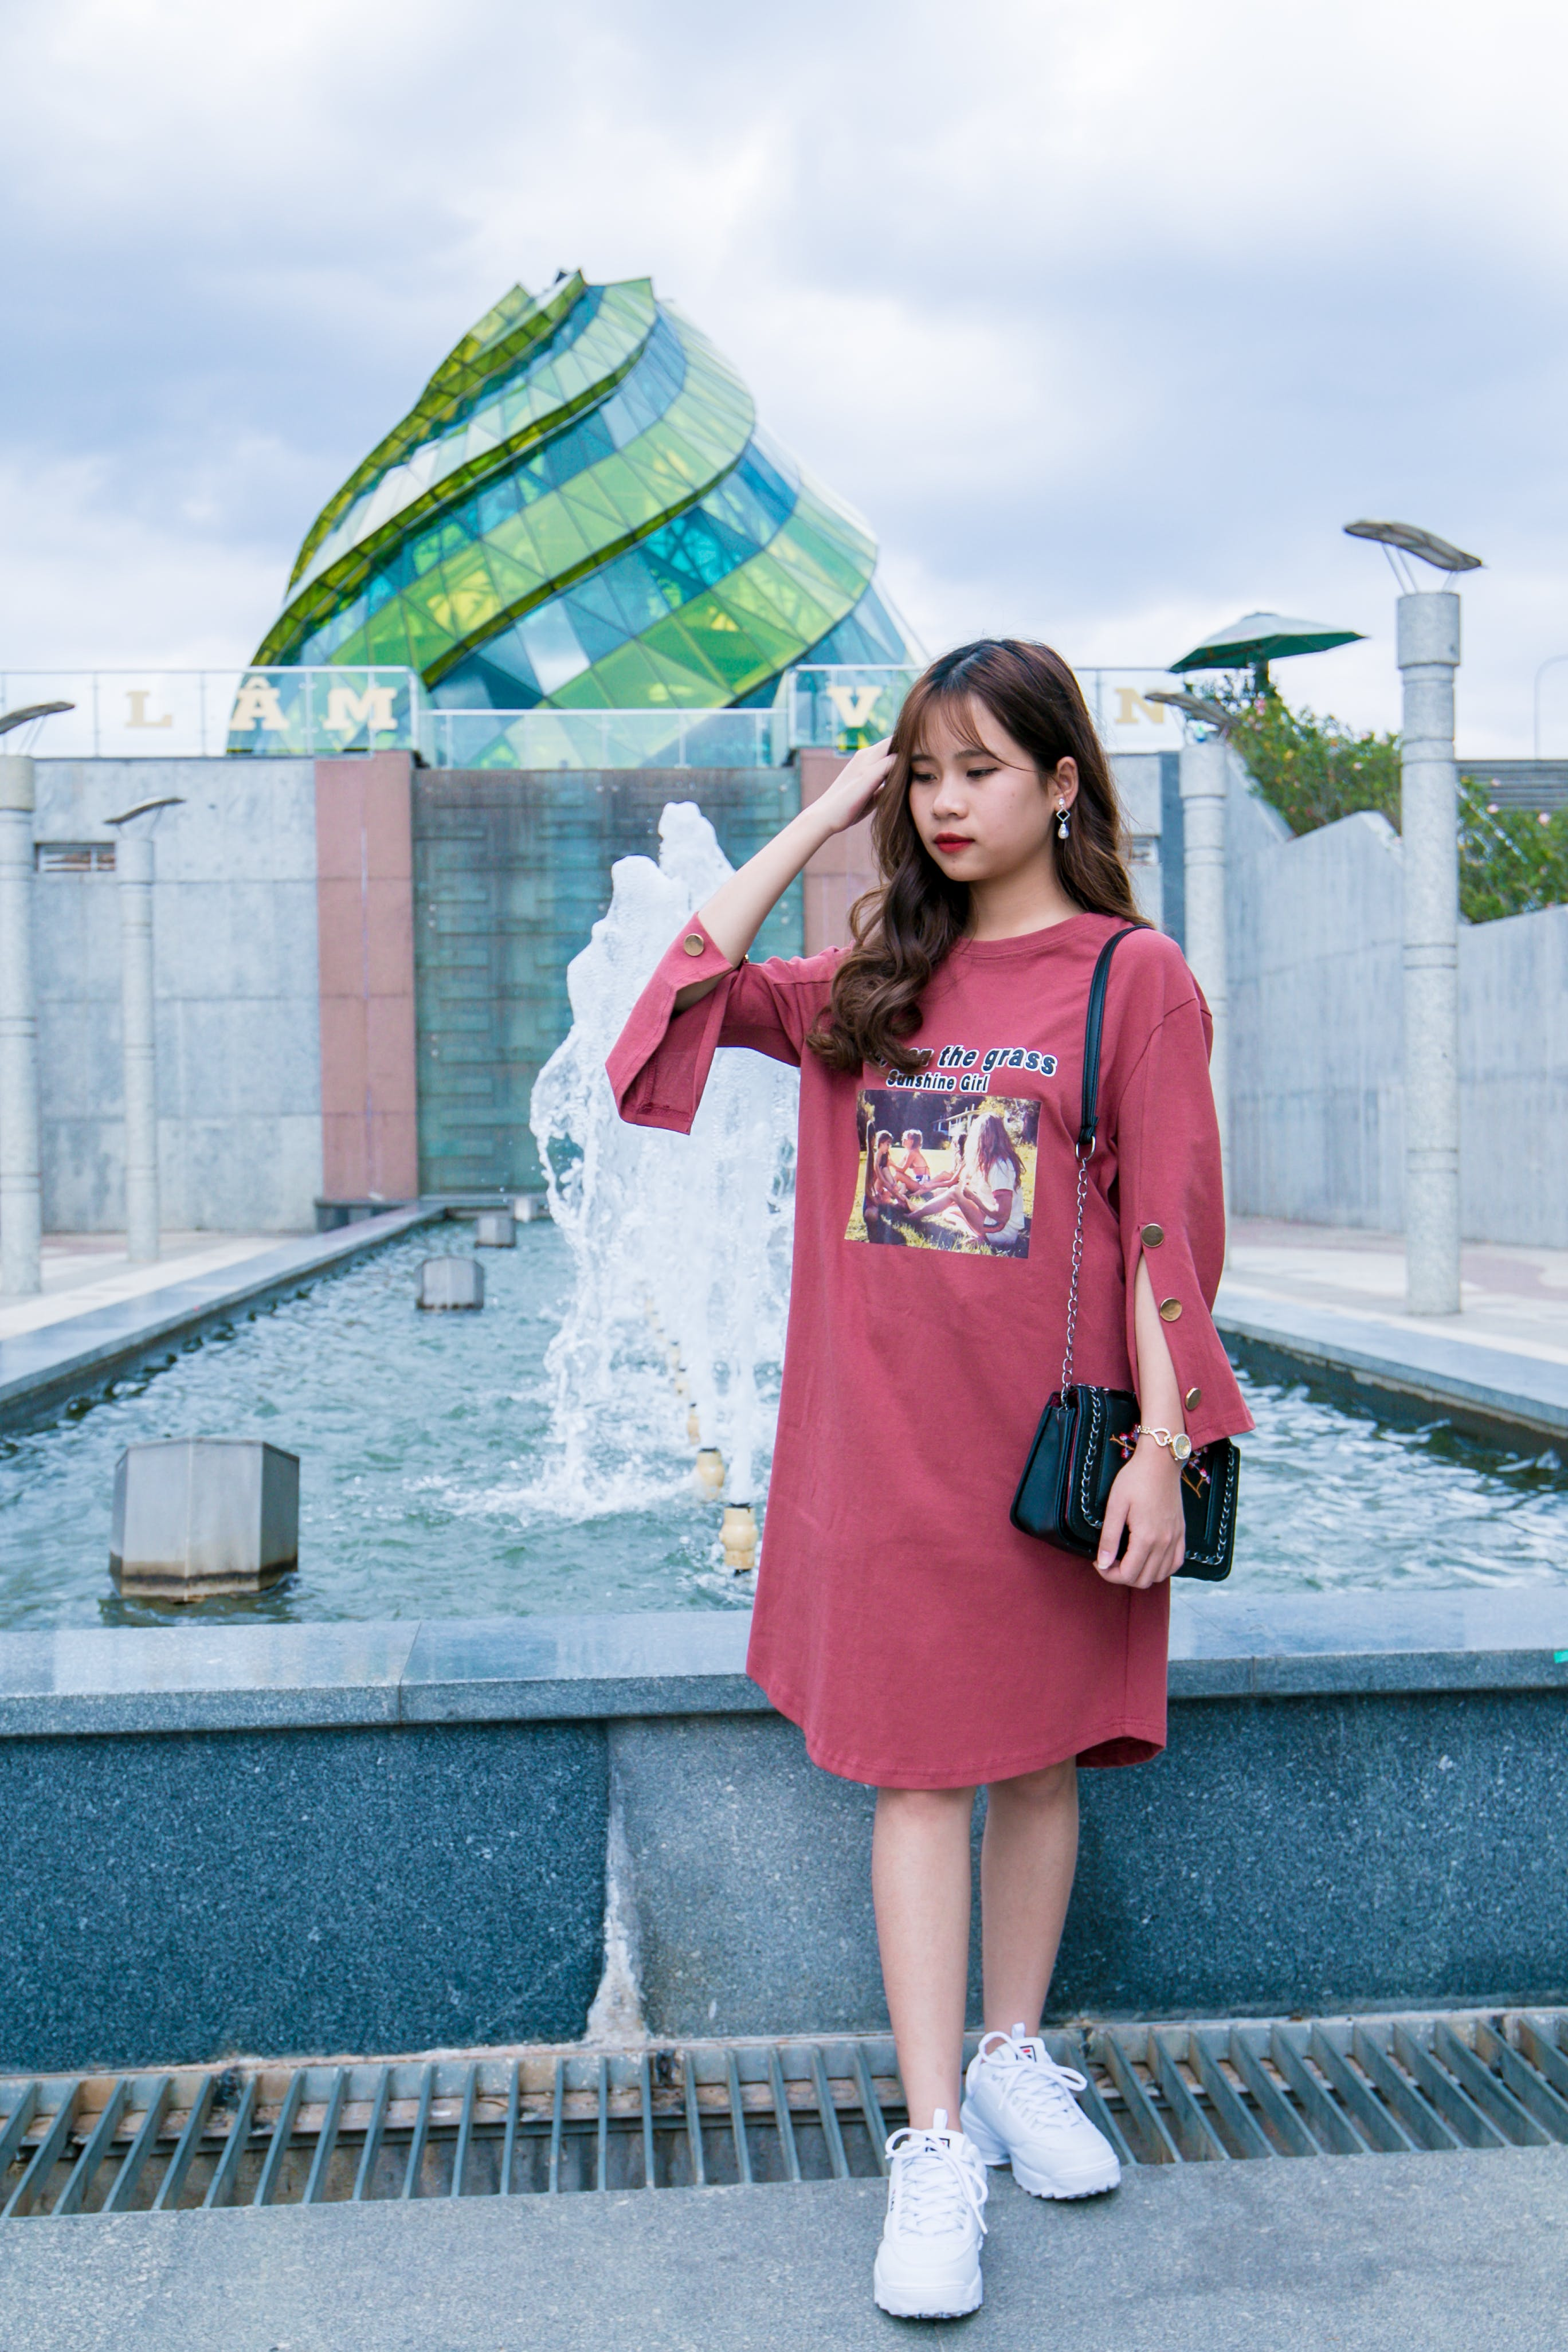 Woman Wearing Maroon Crew-neck Long-sleeved Dress Standing Next to Fountain Under Cloudy Sky